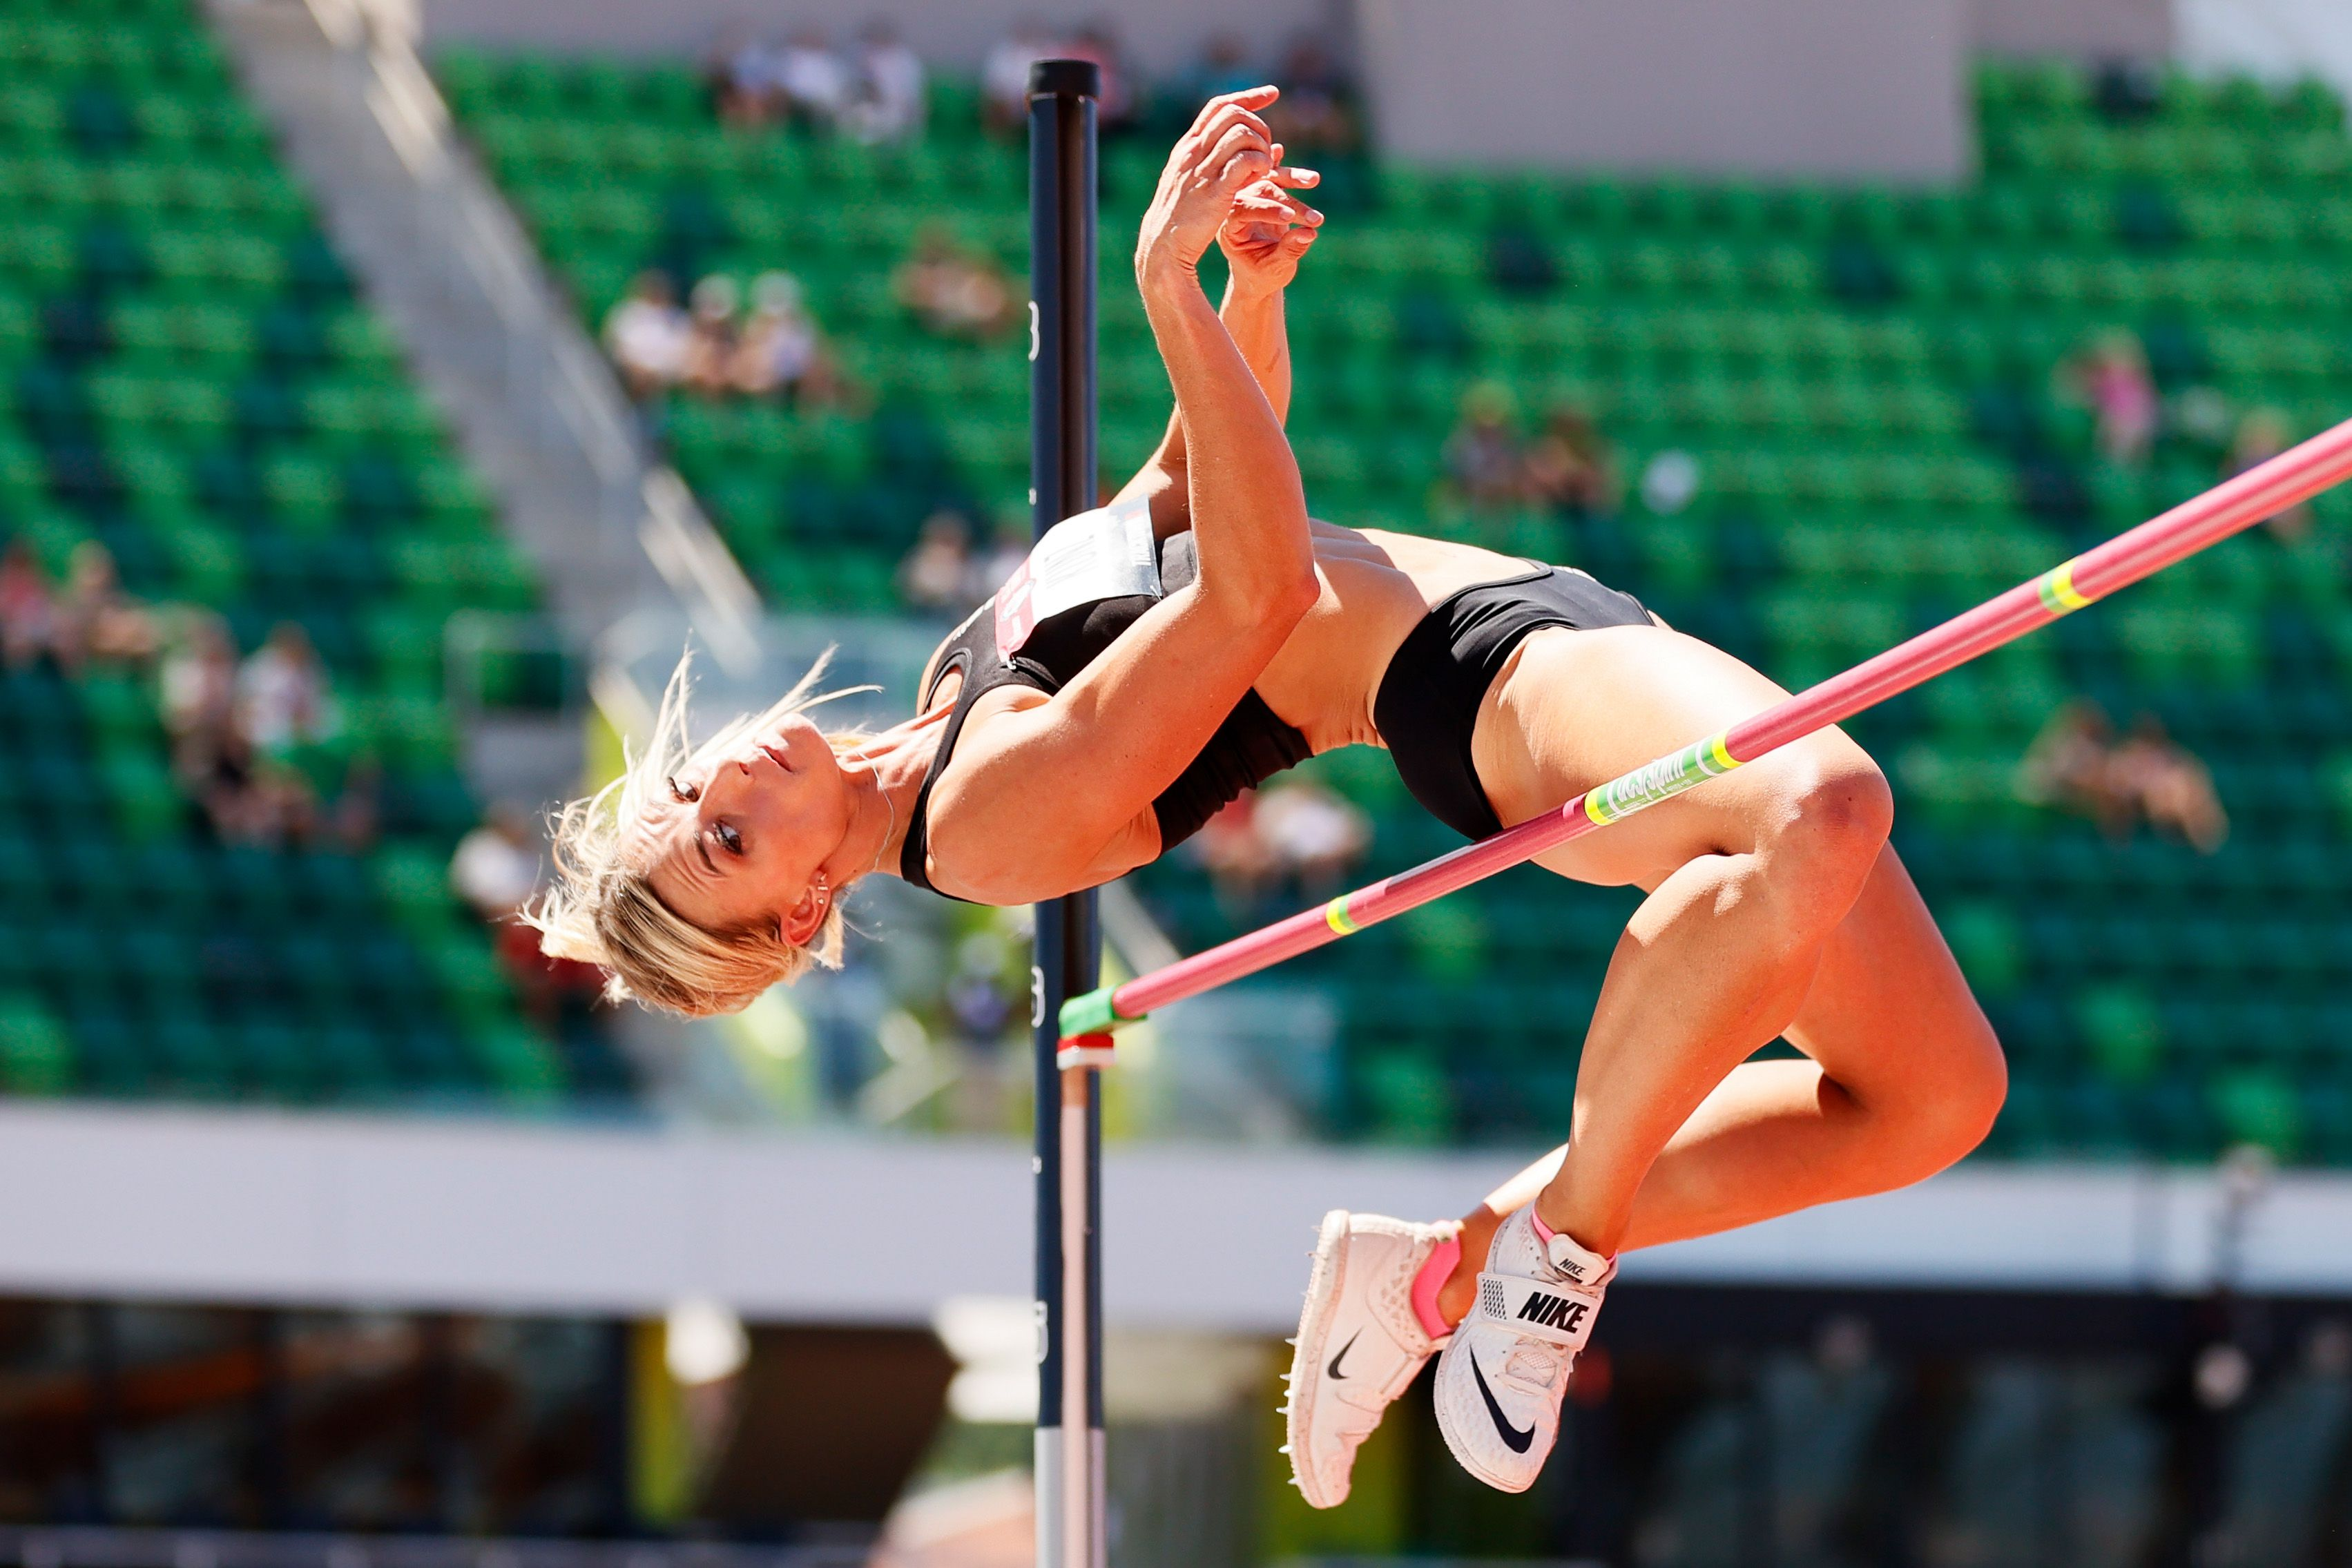 Annie Kunz competes in the high jump as part of the heptathlon at the U.S. trials in June. Photo: Steph Chambers/Getty Images